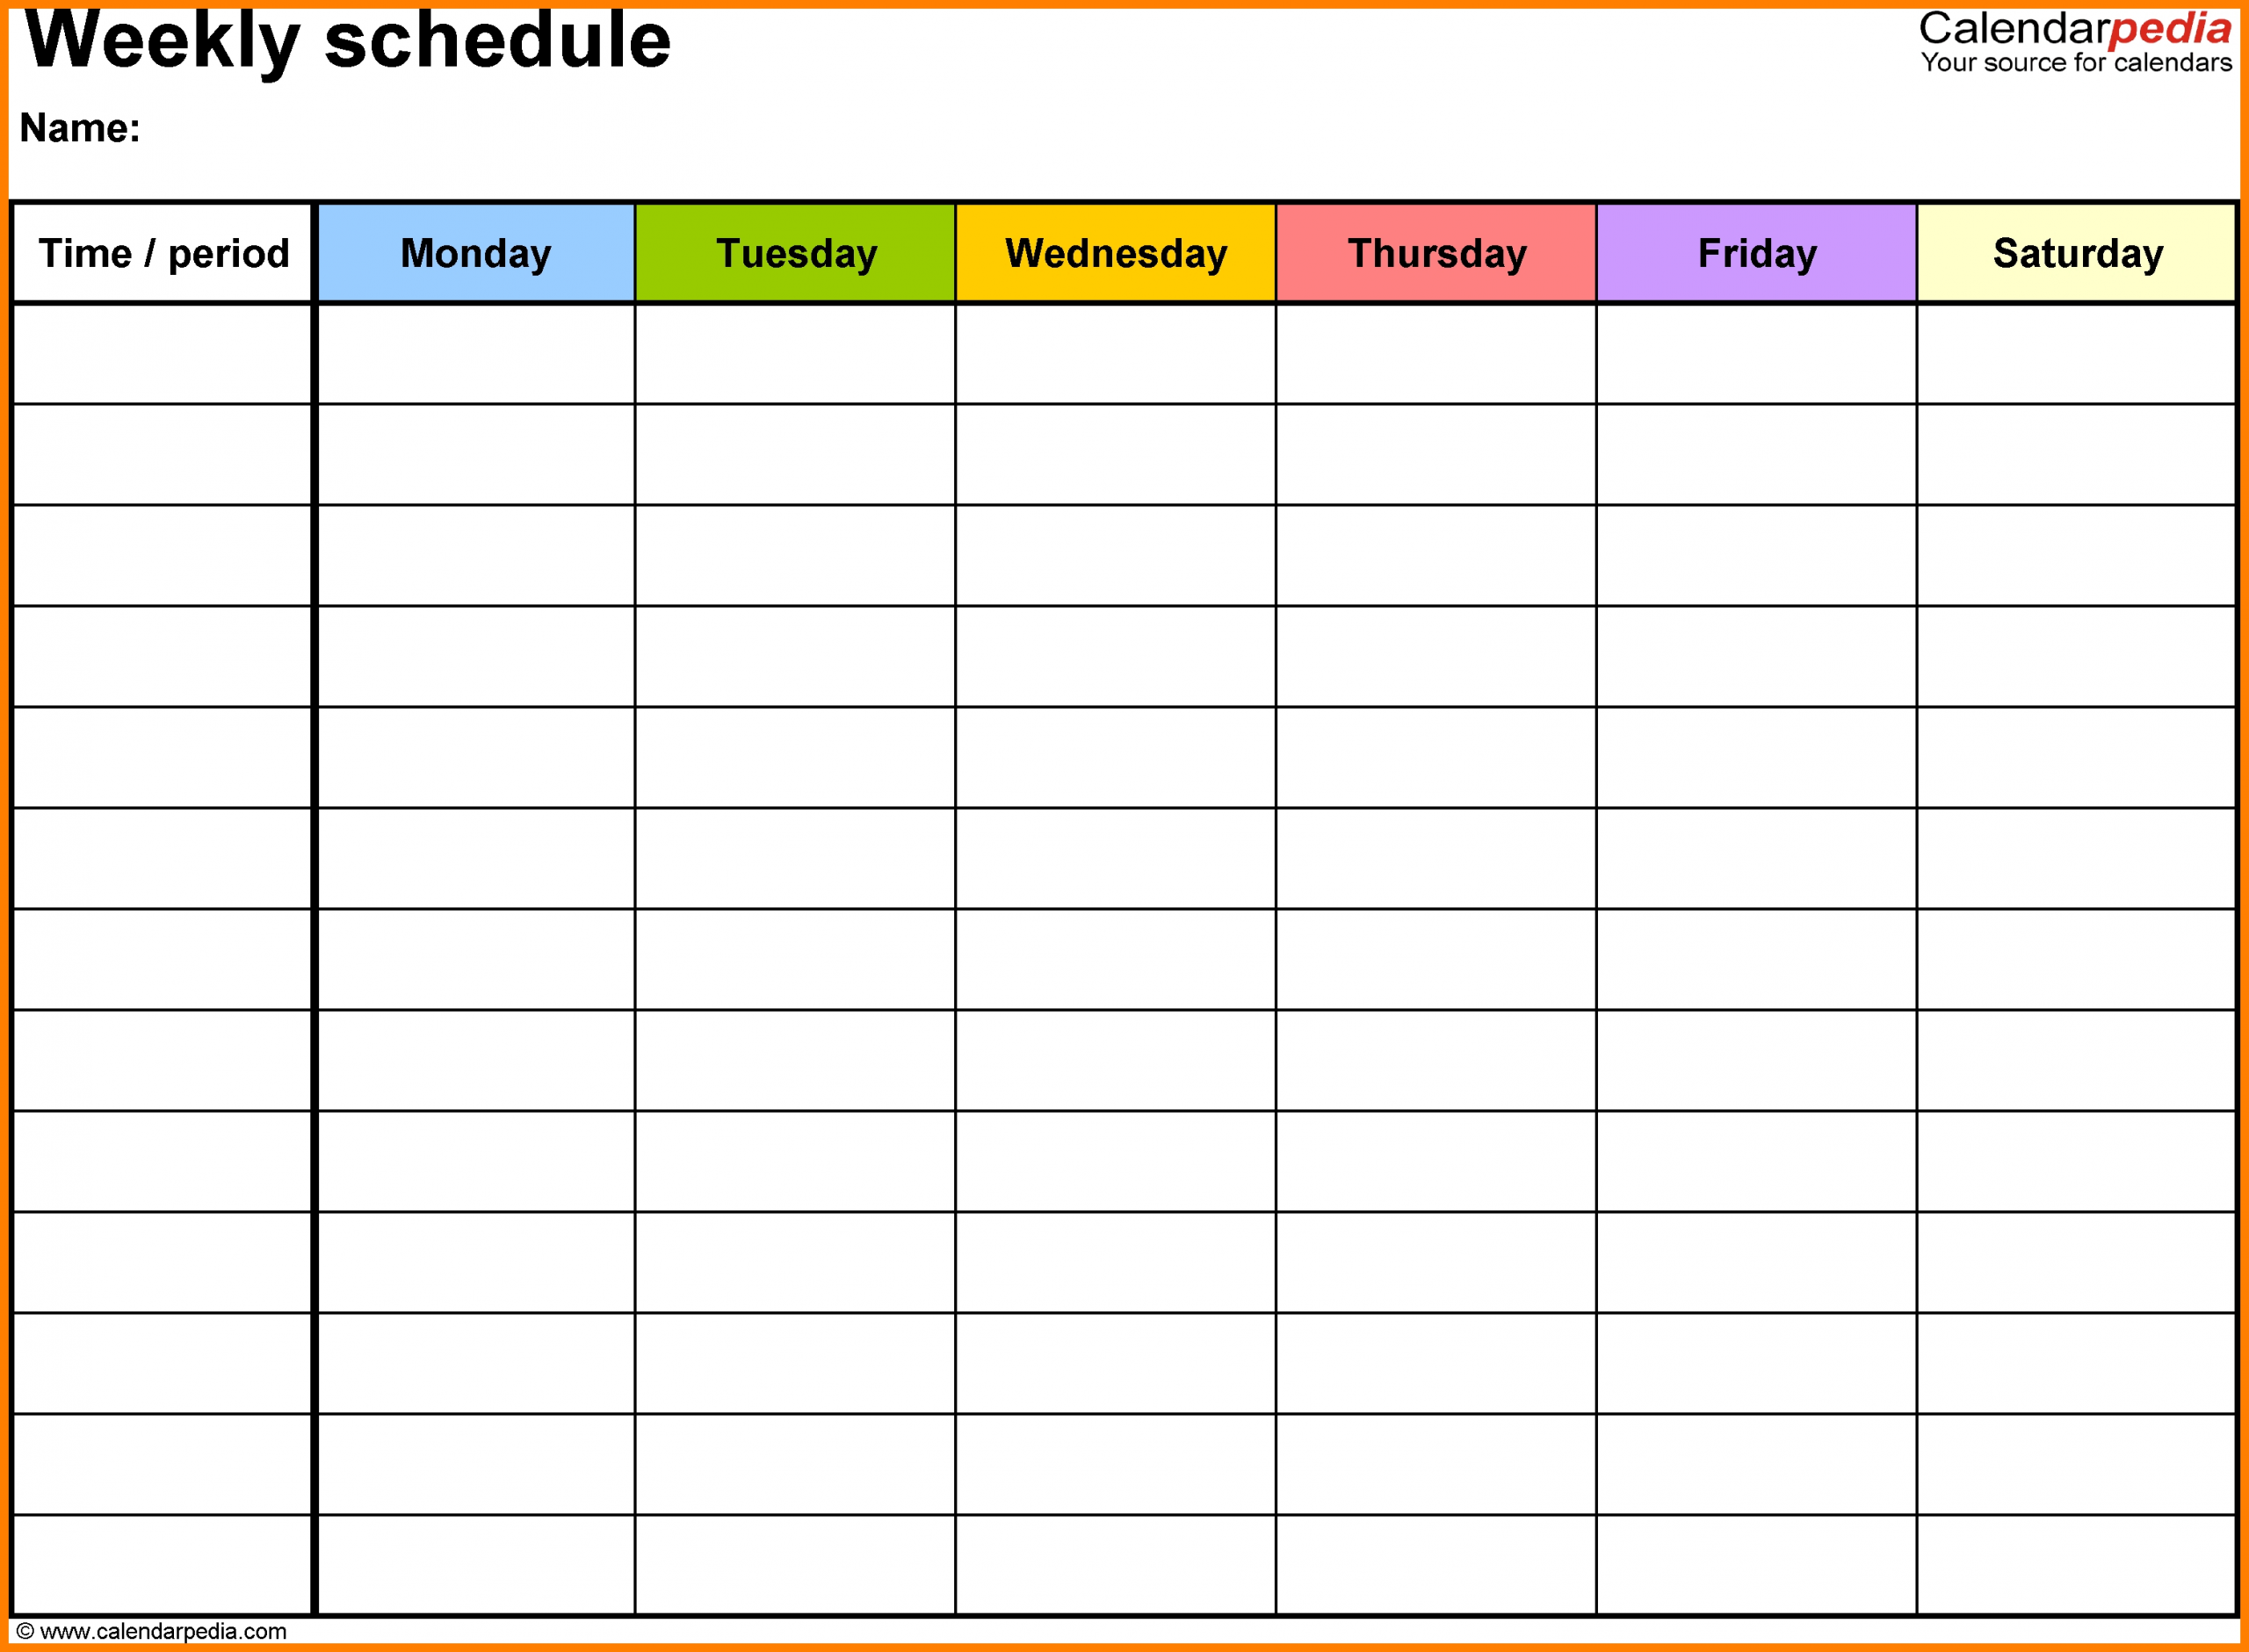 Printable Weekly Calendar With Time Slots - Calendar Weekly Calendar Template With Time Slots